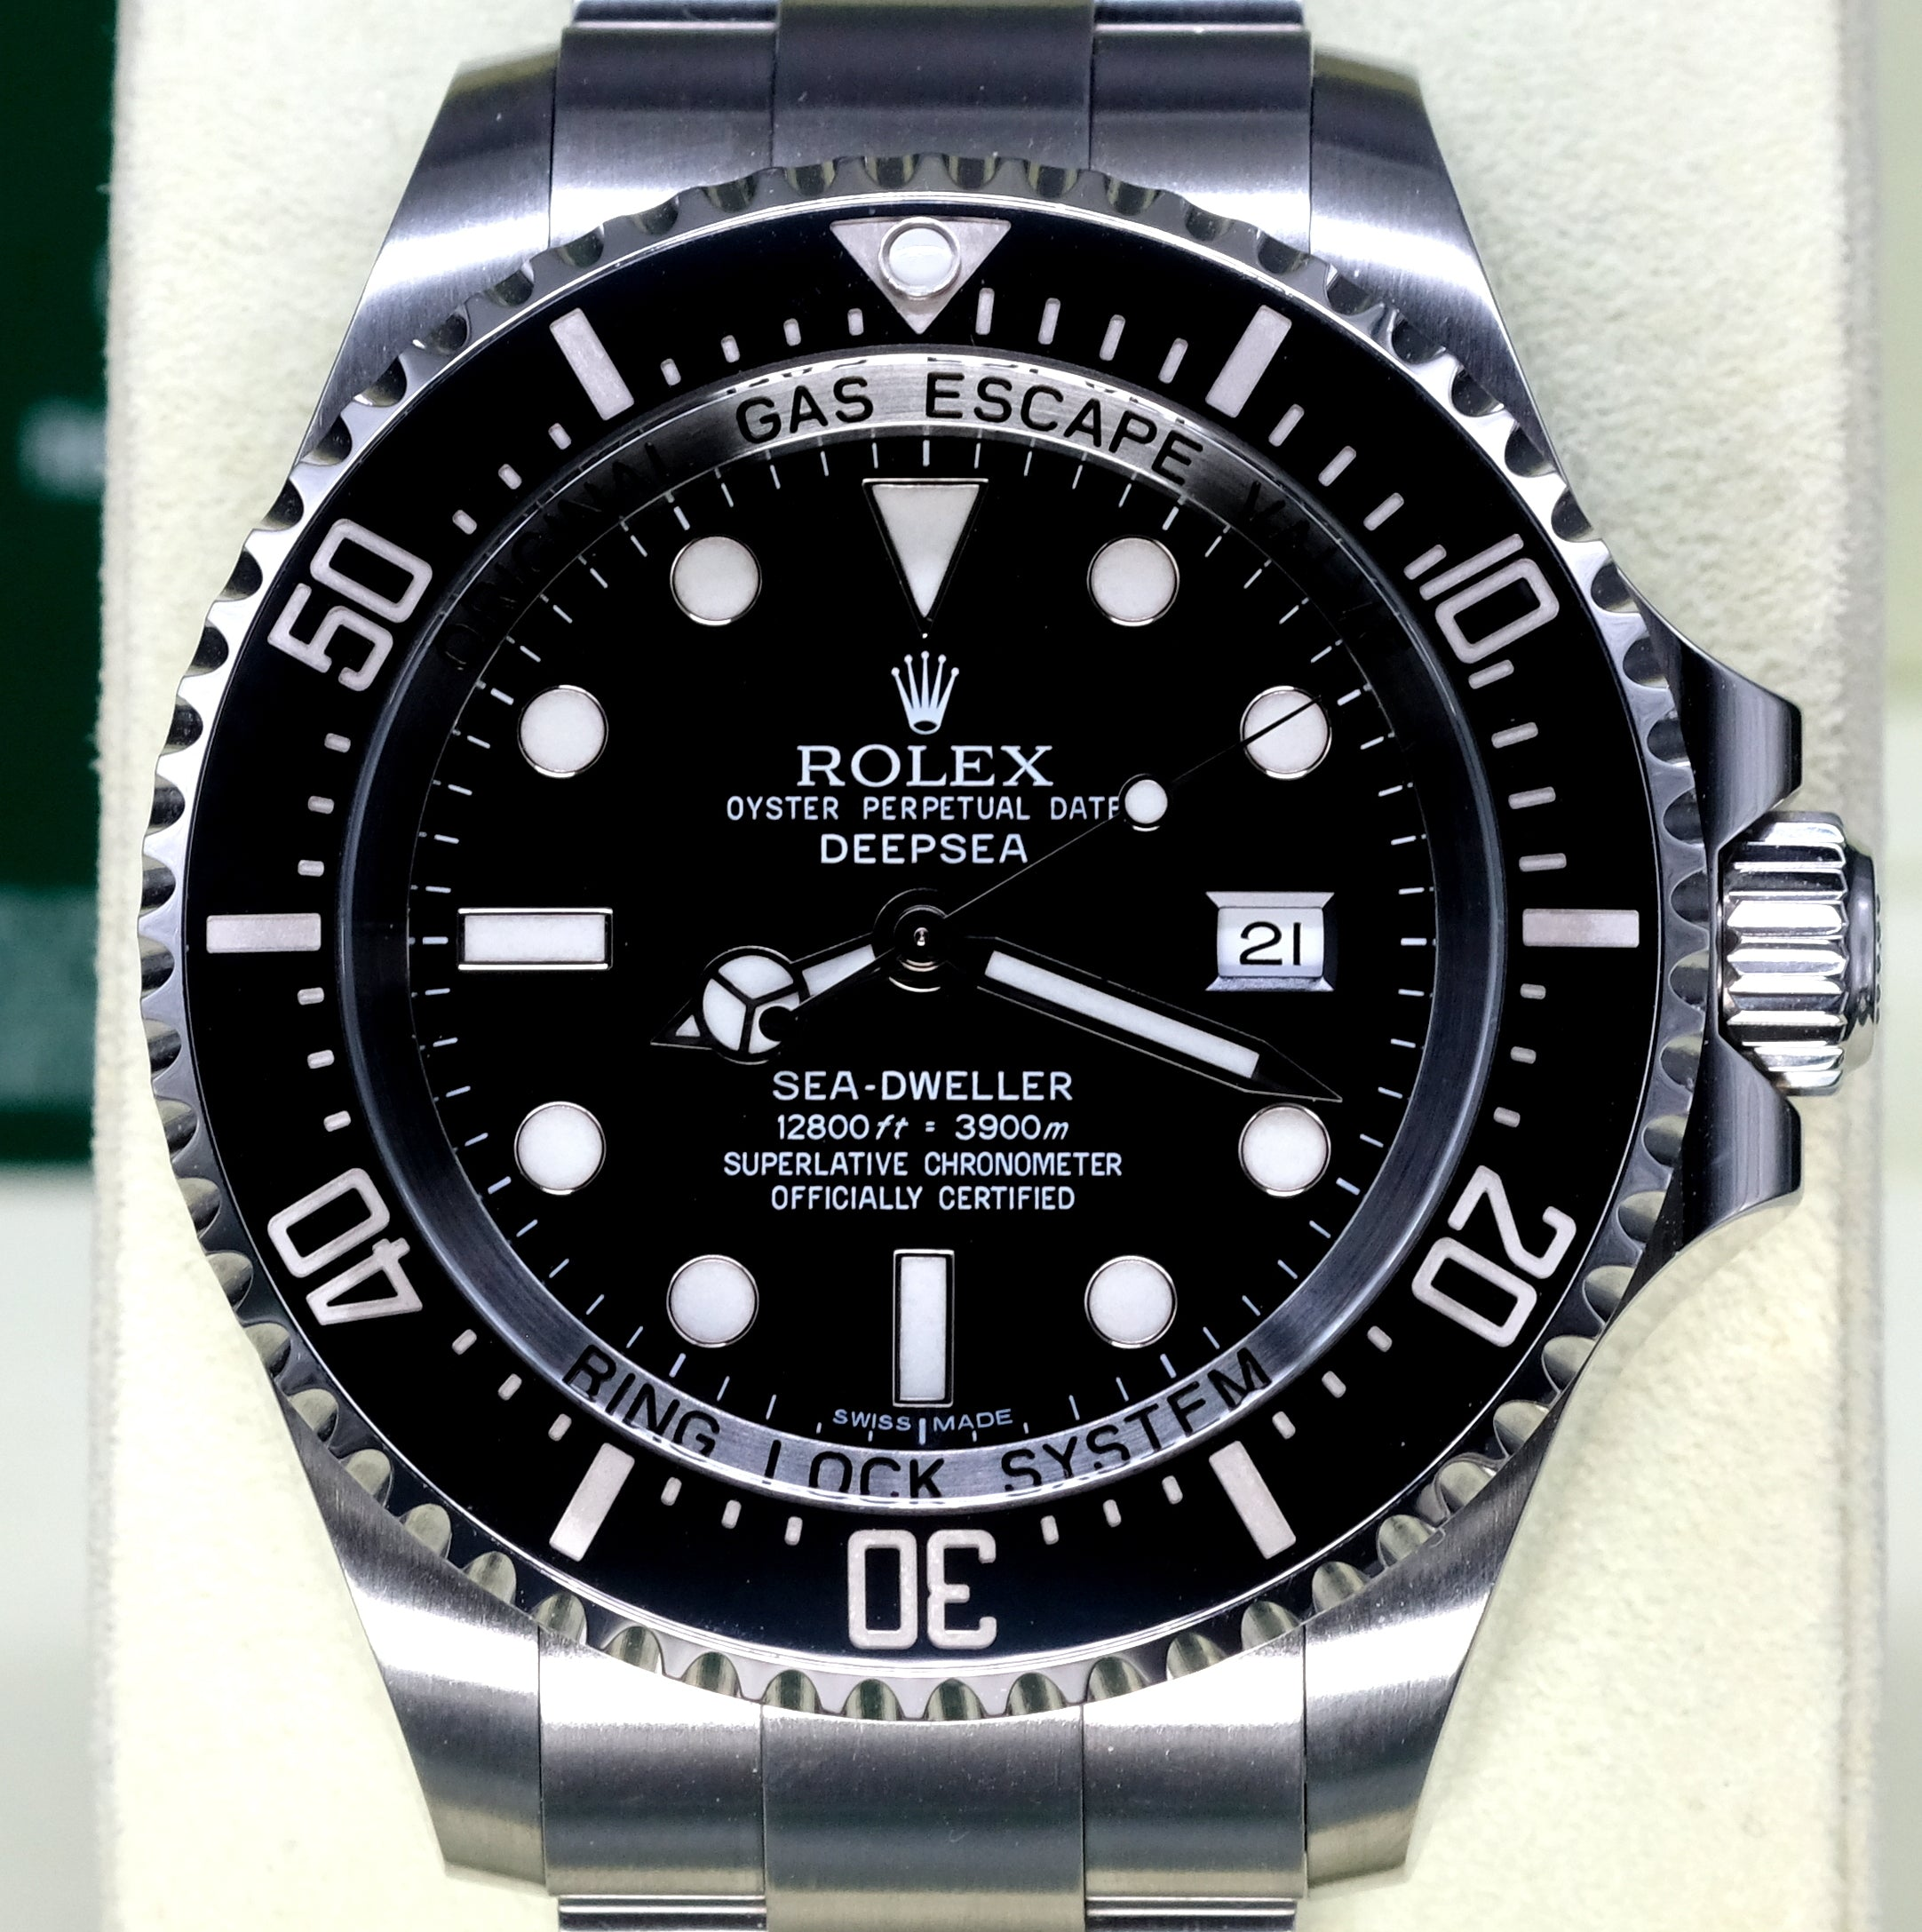 [Pre-Owned Watch] Rolex Deepsea 44mm 116660 Black Dial (888) (Out of Production)